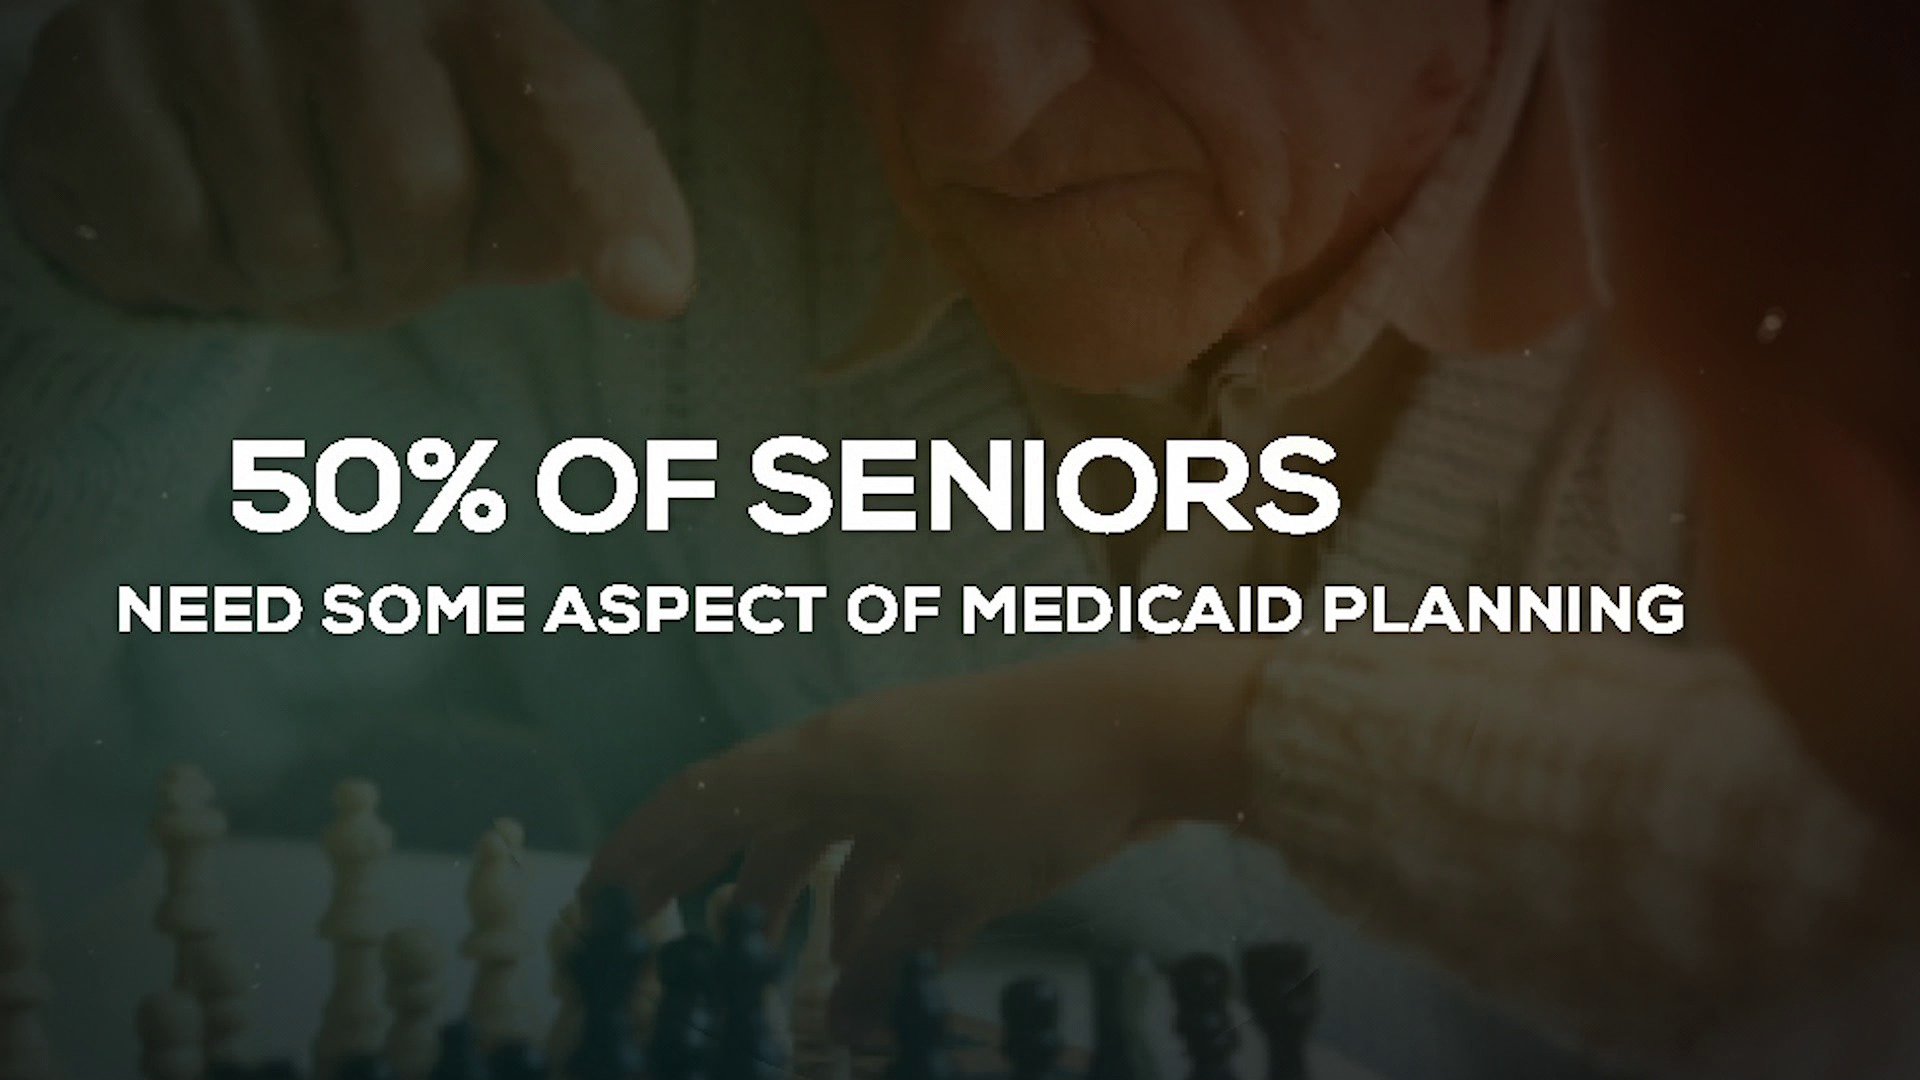 Attorneys Understanding Medicaid Planning In High Demand For Seniors